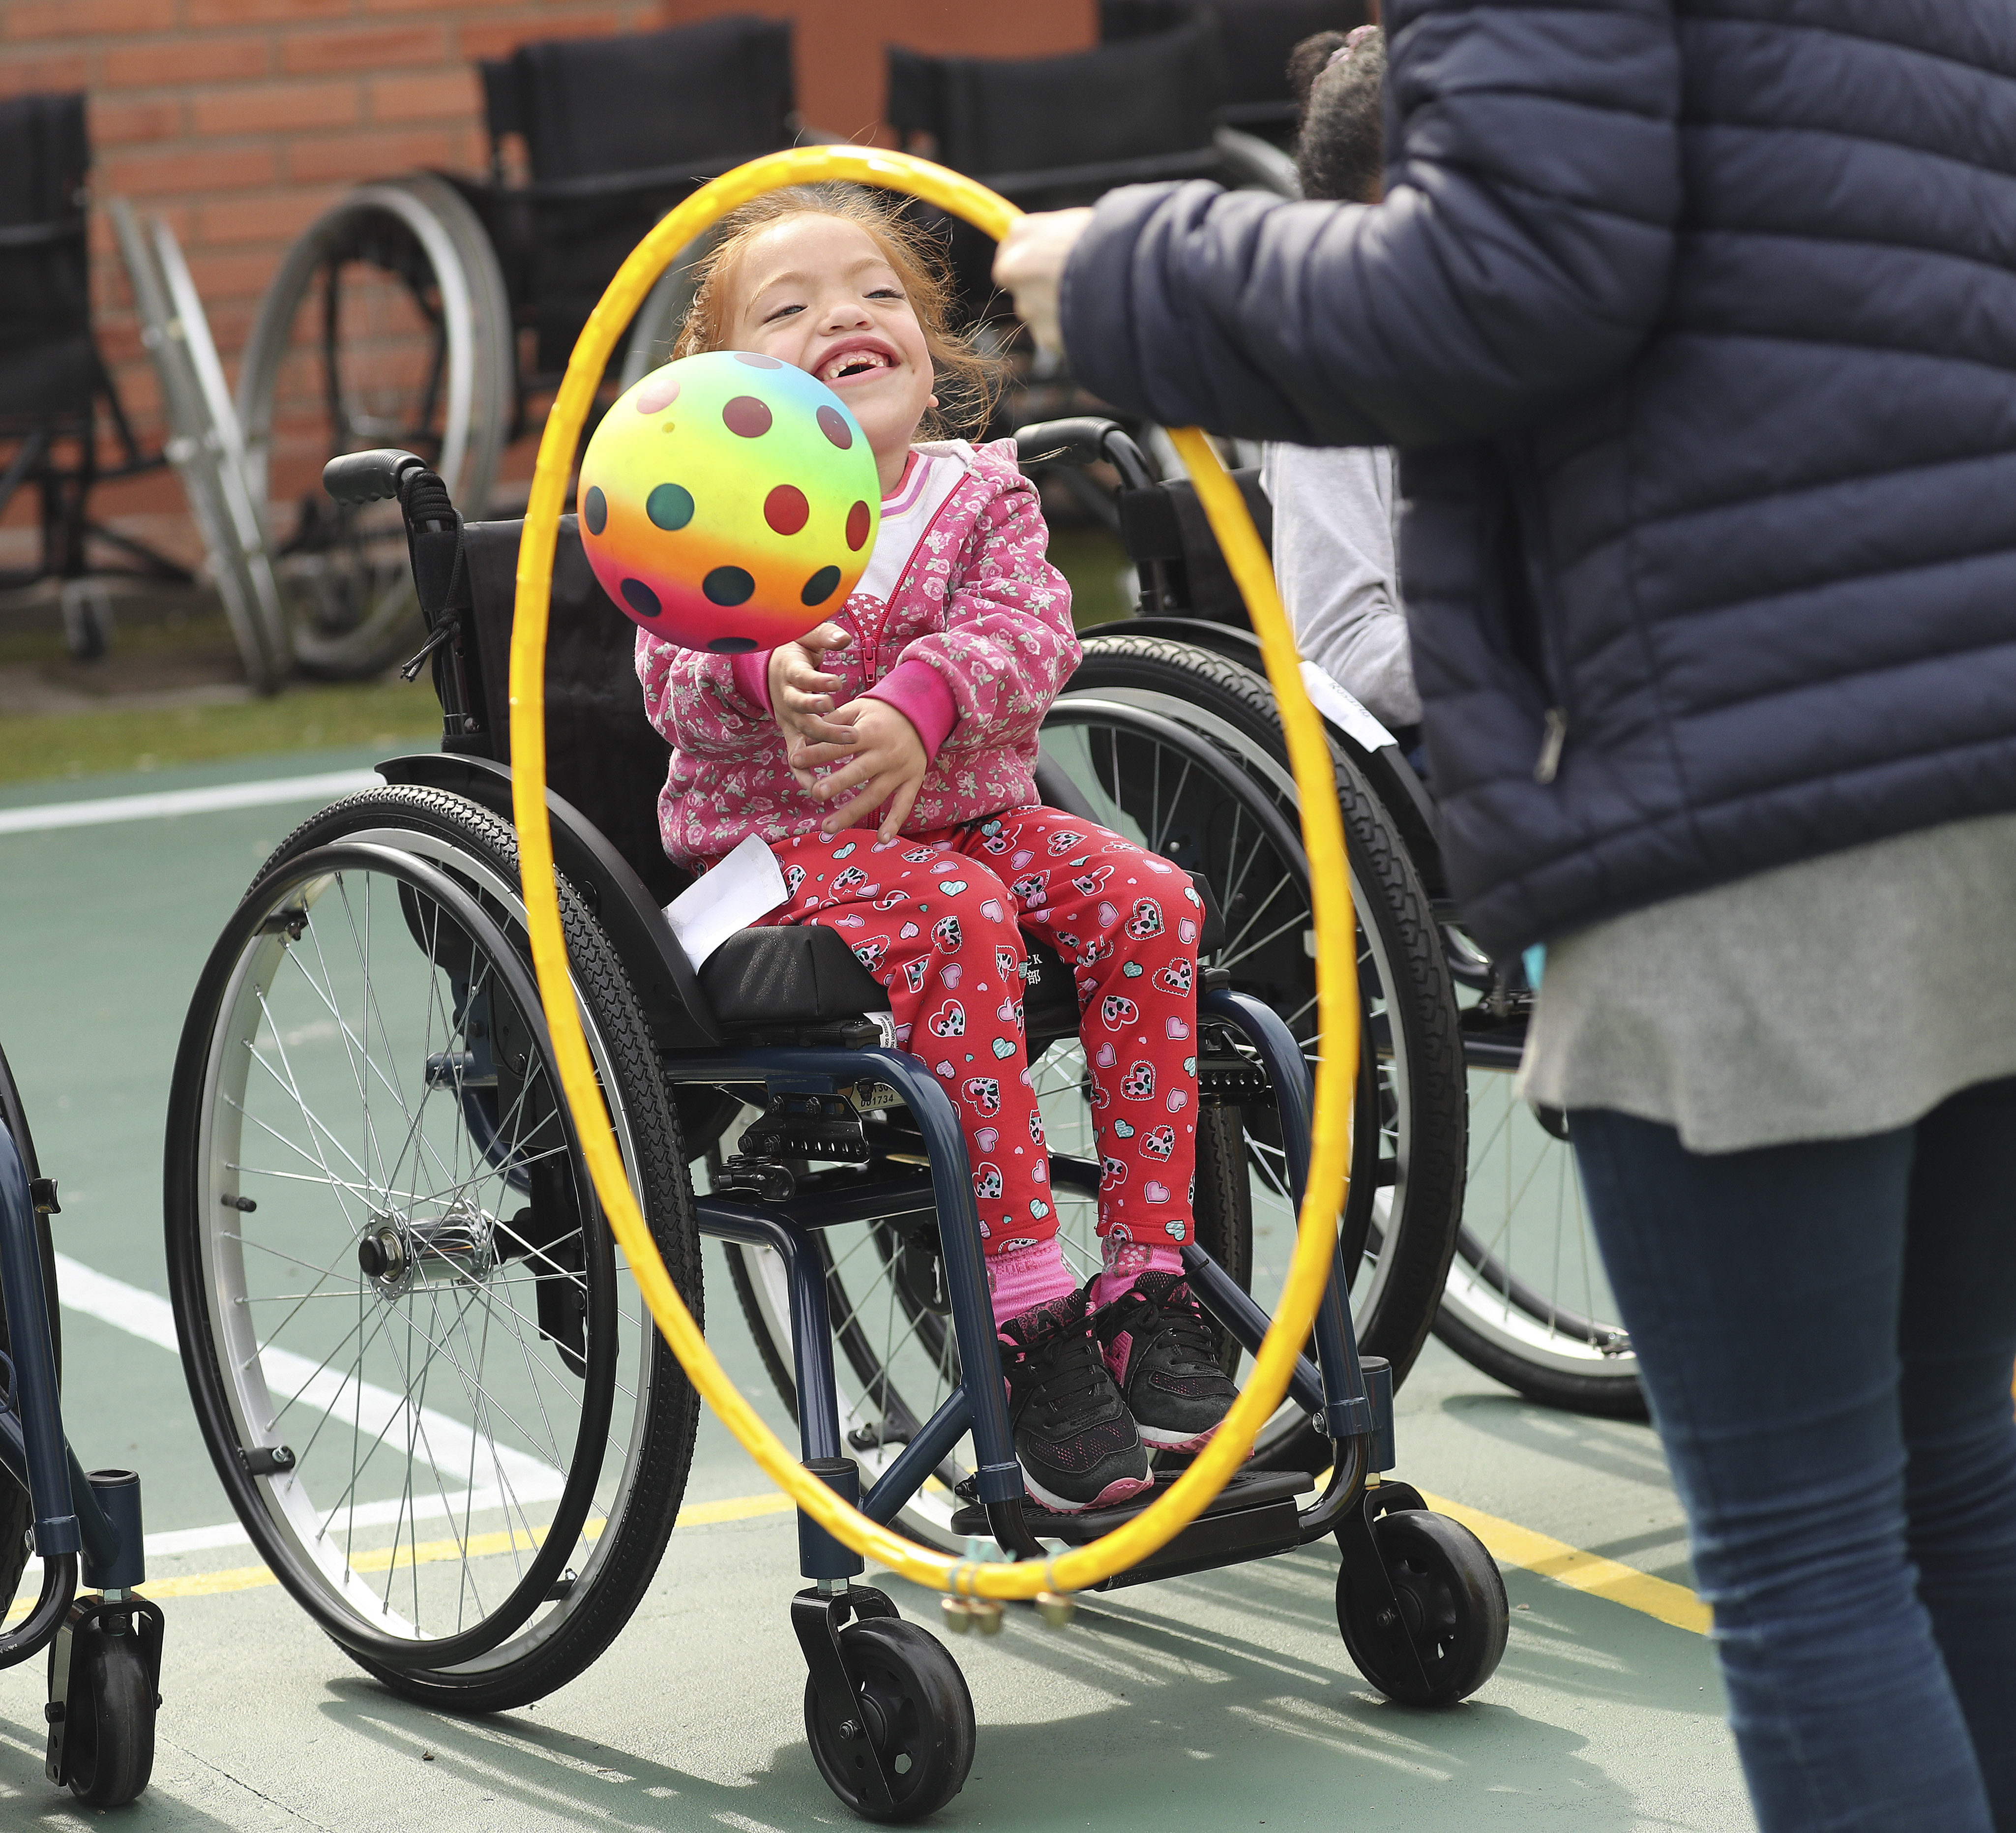 Latter-day Saint Charities donated wheelchairs to recipients and played games with them at the Villa Urquiza Ward meetinghouse in Buenos Aires, Argentina, on Wednesday, Aug. 28, 2019.